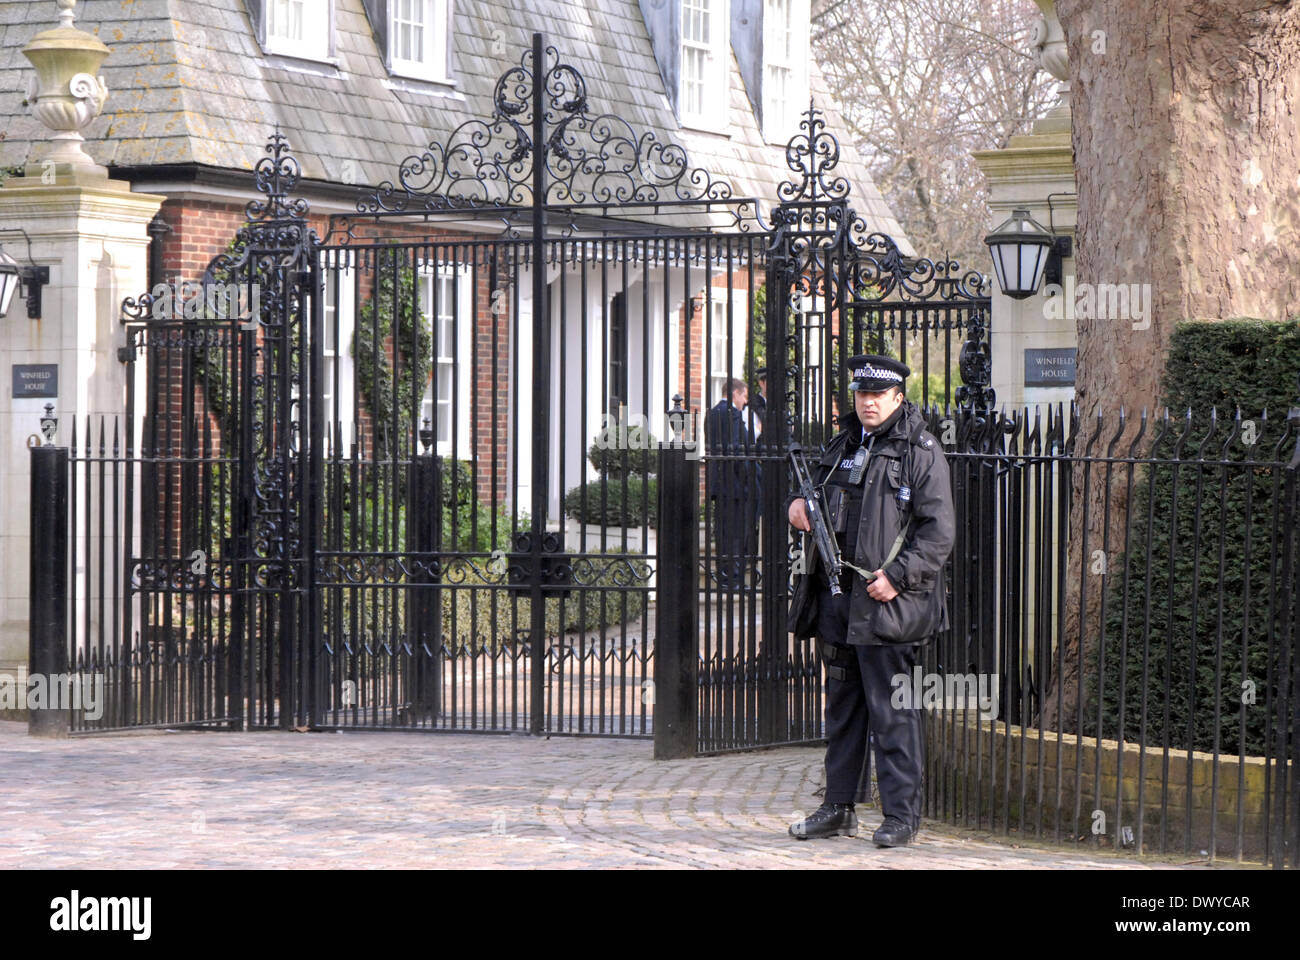 London, UK . 14th Mar, 2014. John Kerry and Sergei Lavrov meet at the American Ambassadors House Winfield House in Regents Park London 14/03/2014 Credit:  JOHNNY ARMSTEAD/Alamy Live News - Stock Image